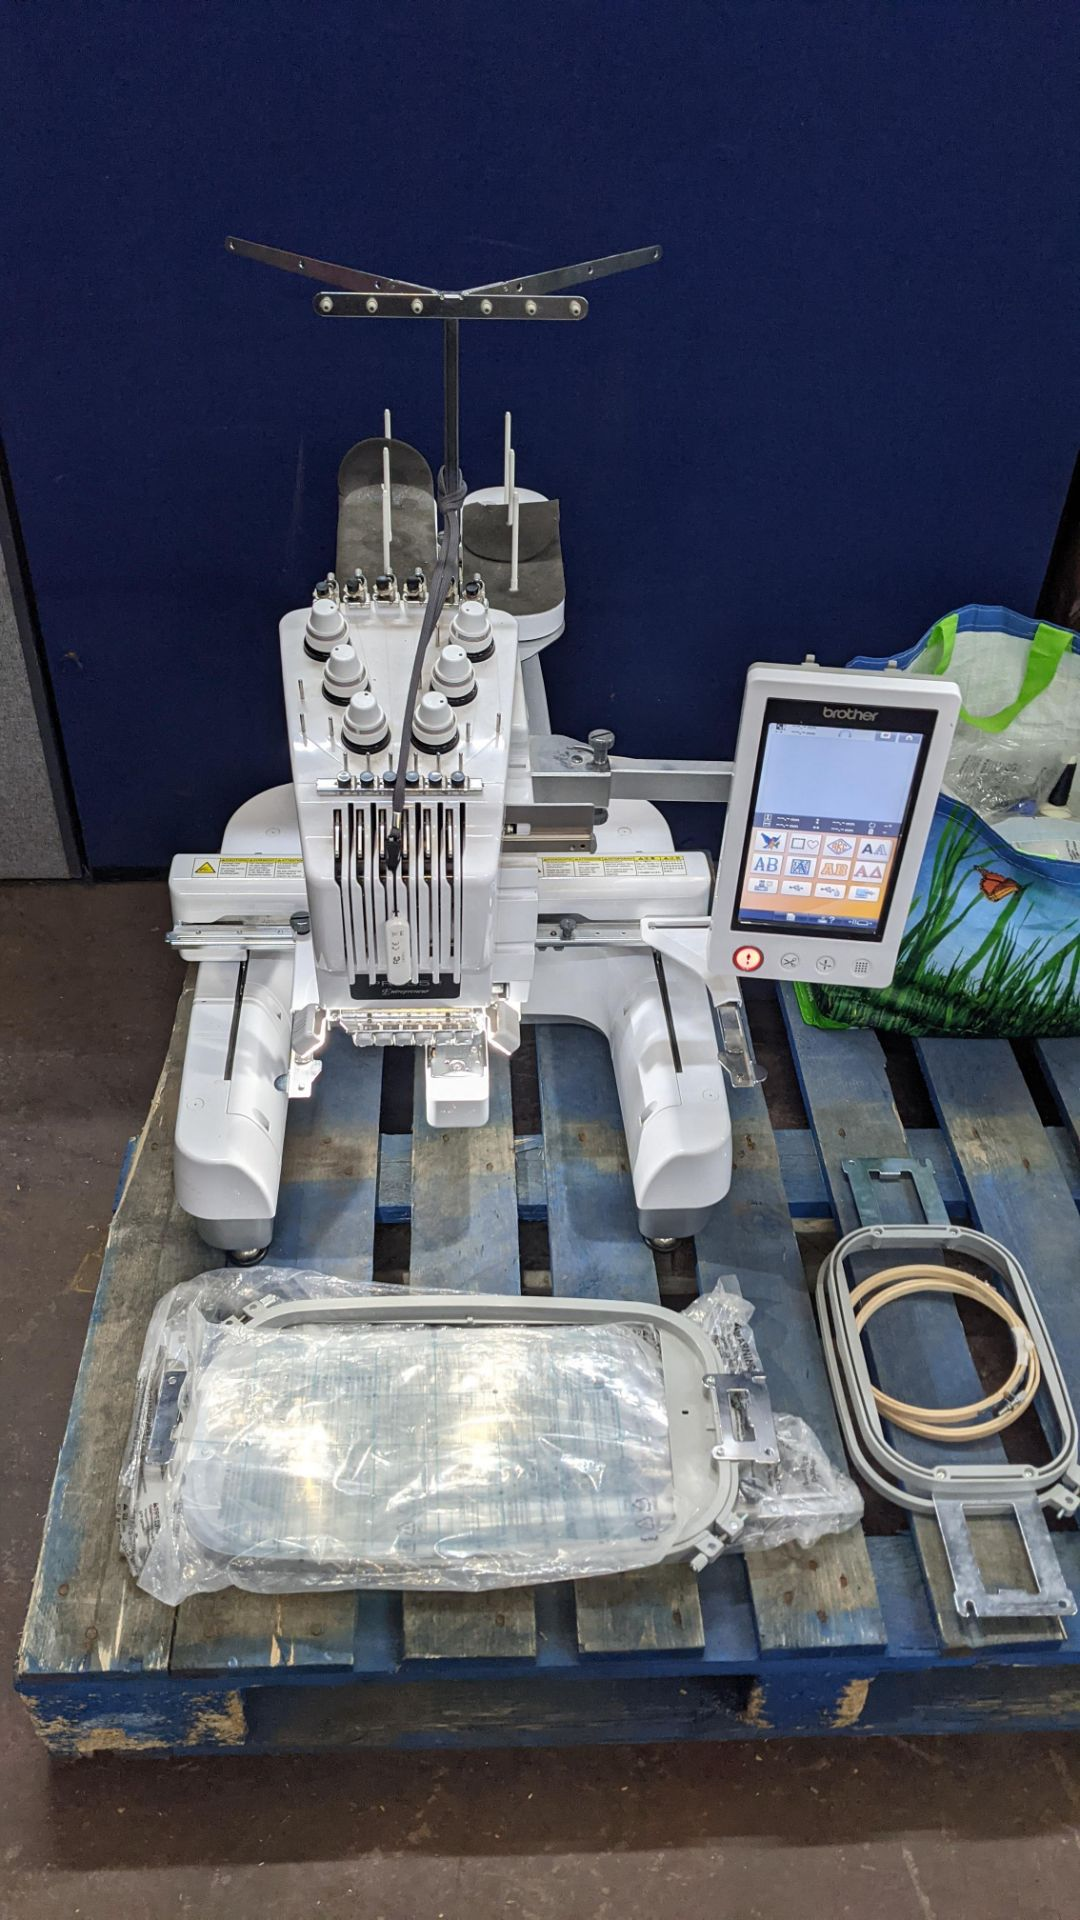 Brother PR655 single head 6 needle embroidery machine, serial no. E72364-D6B113501 incorporating lar - Image 6 of 25